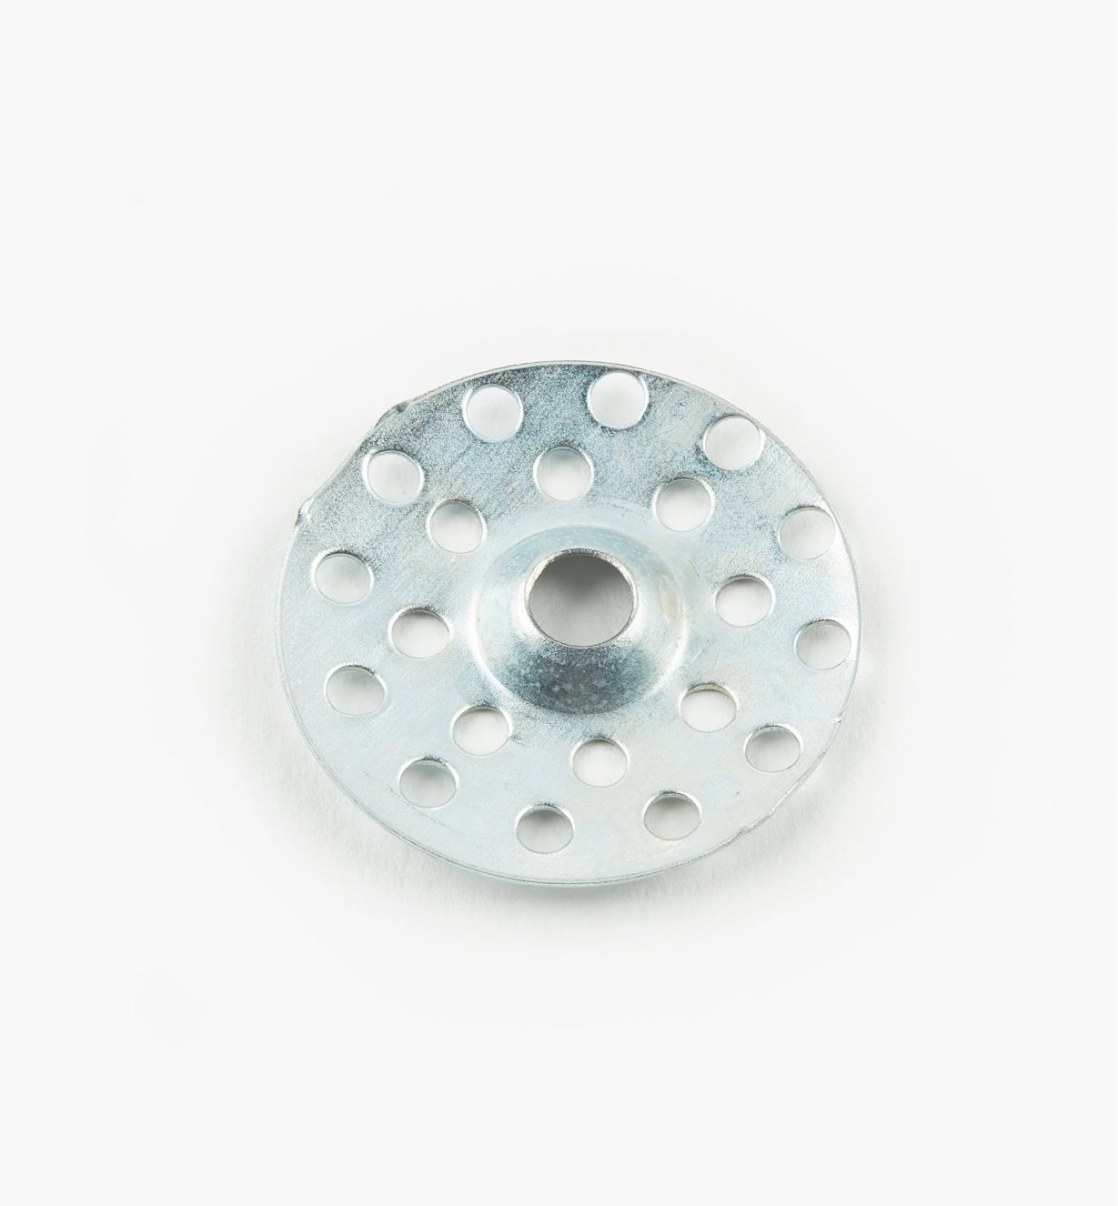 Washers For Plaster Repair intended for Plaster Washers